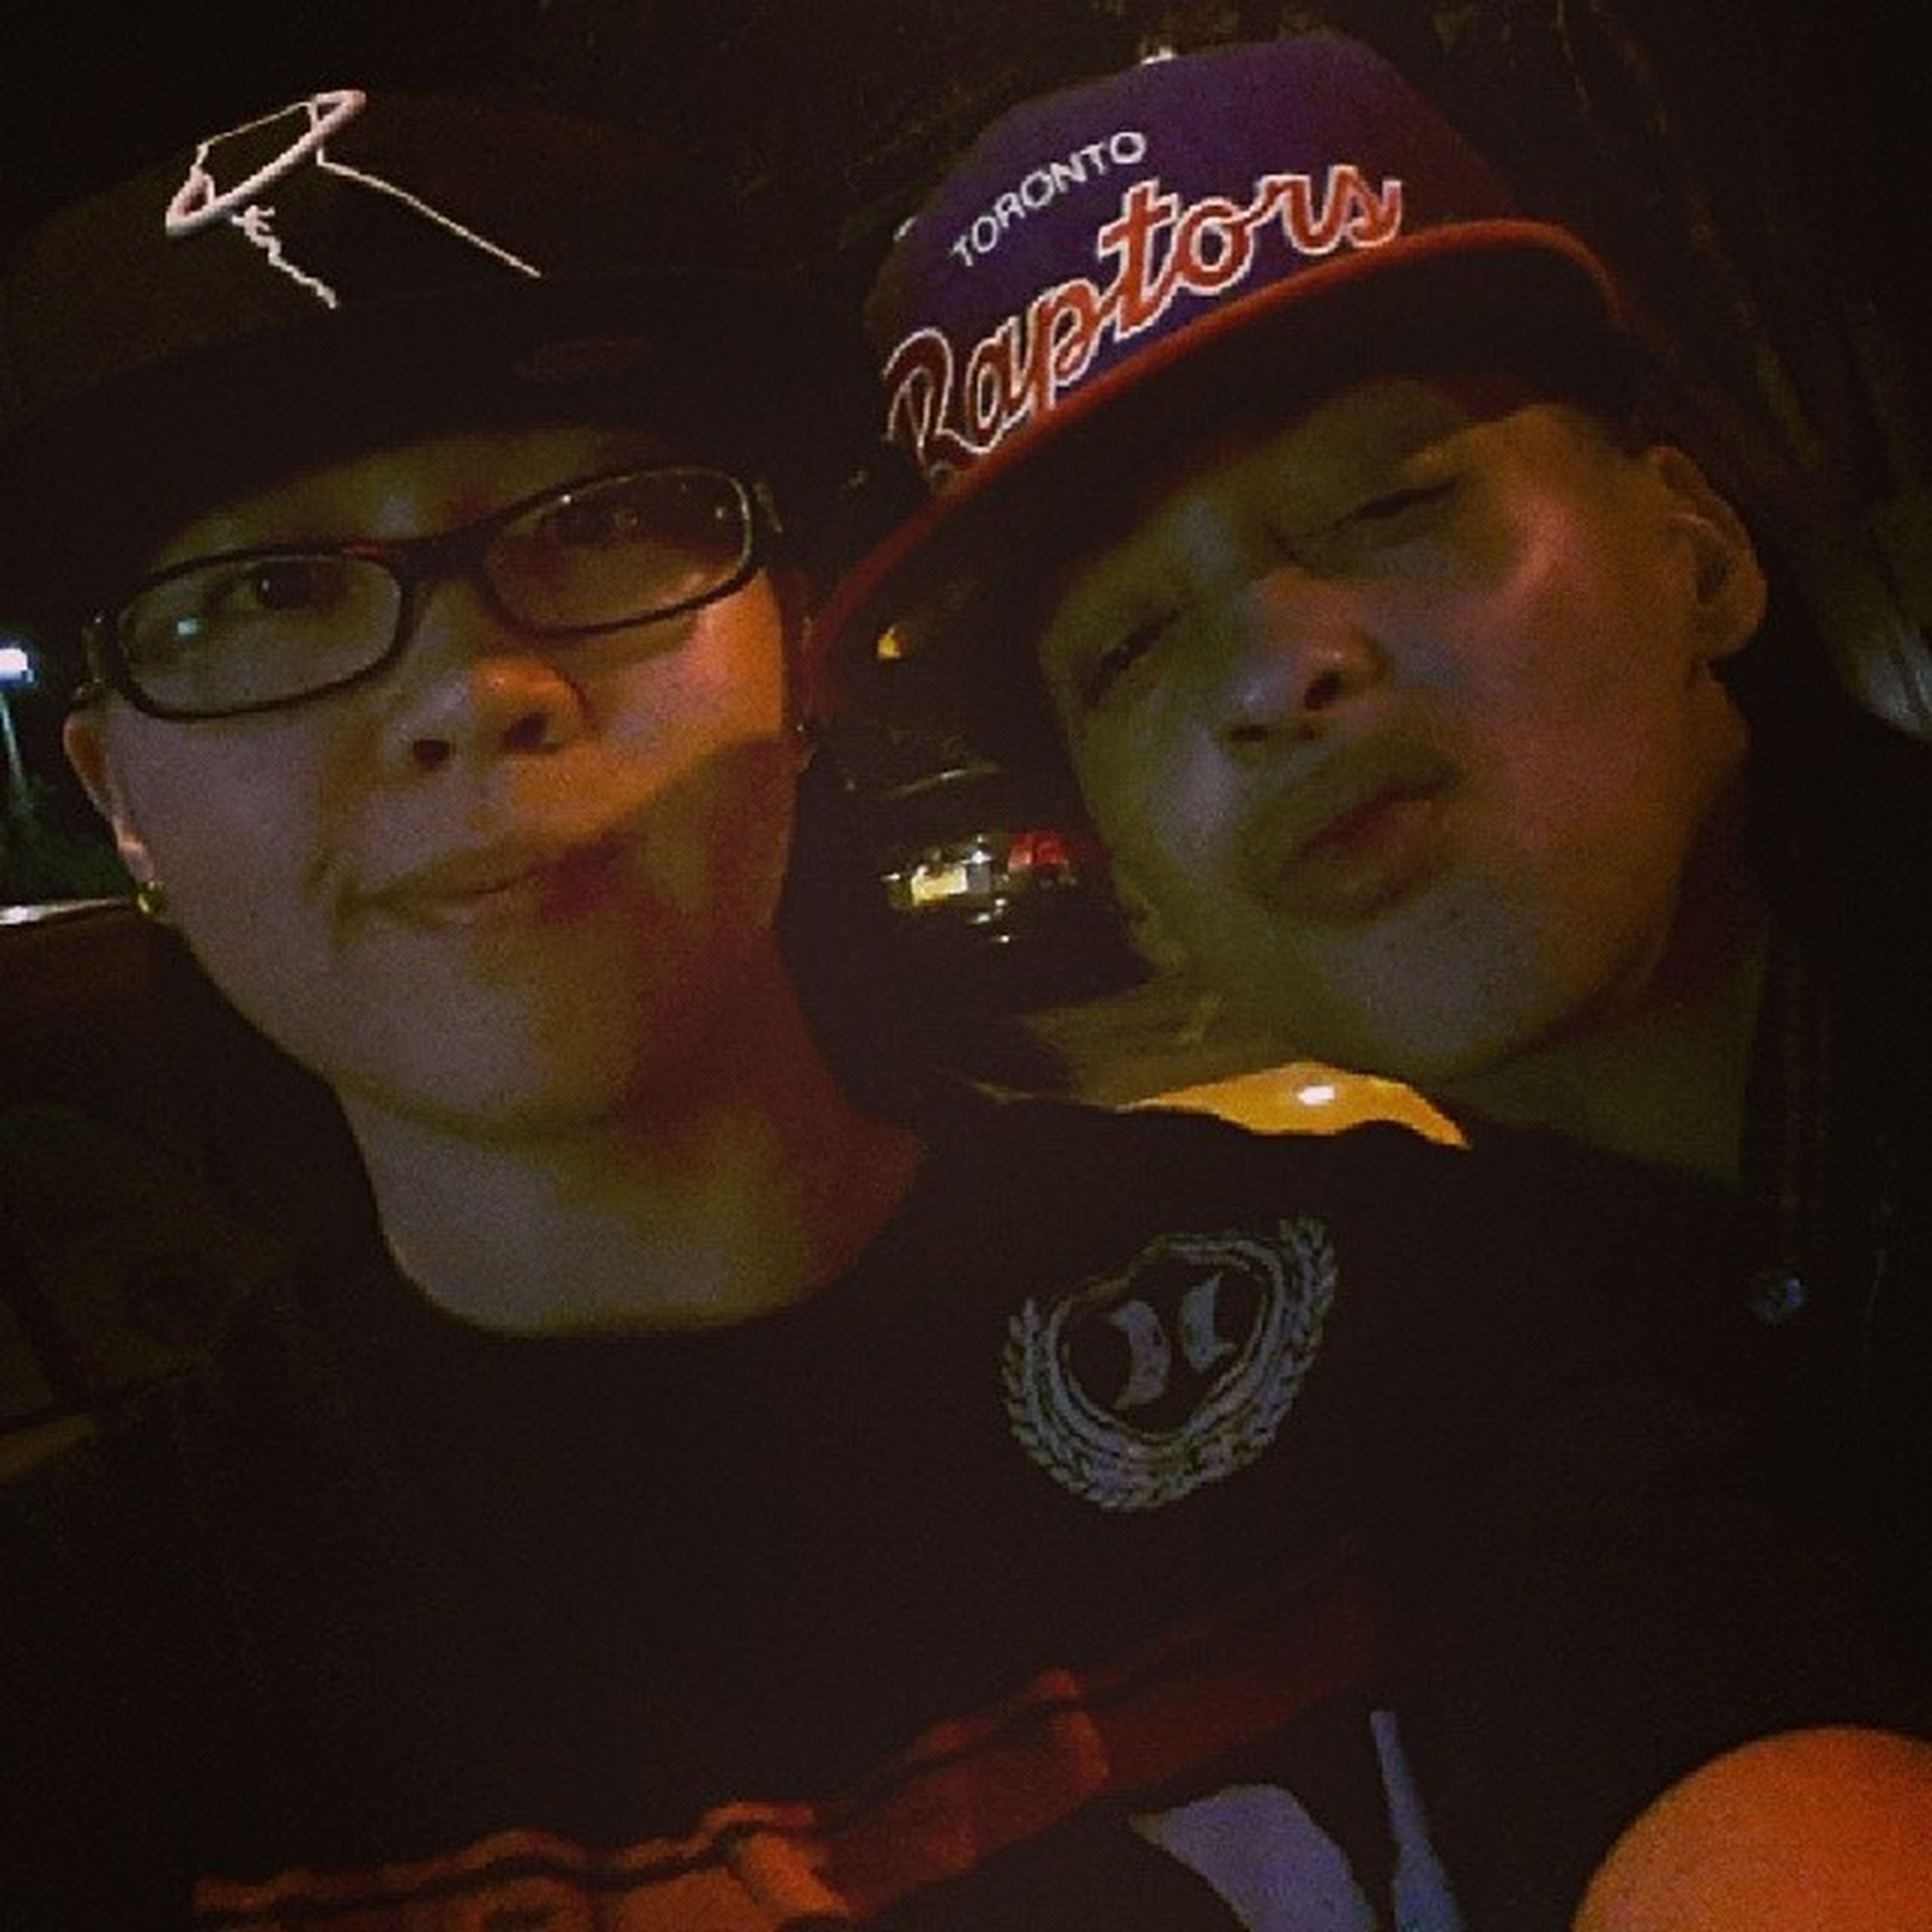 Me and the bro last night at 340 in downtown Pomona. Turn up was real crazy lol. Her J's got stepped on bunch of times lmao too packed up in there.. IWasDesignatedDriver FooHadTooMuch lol